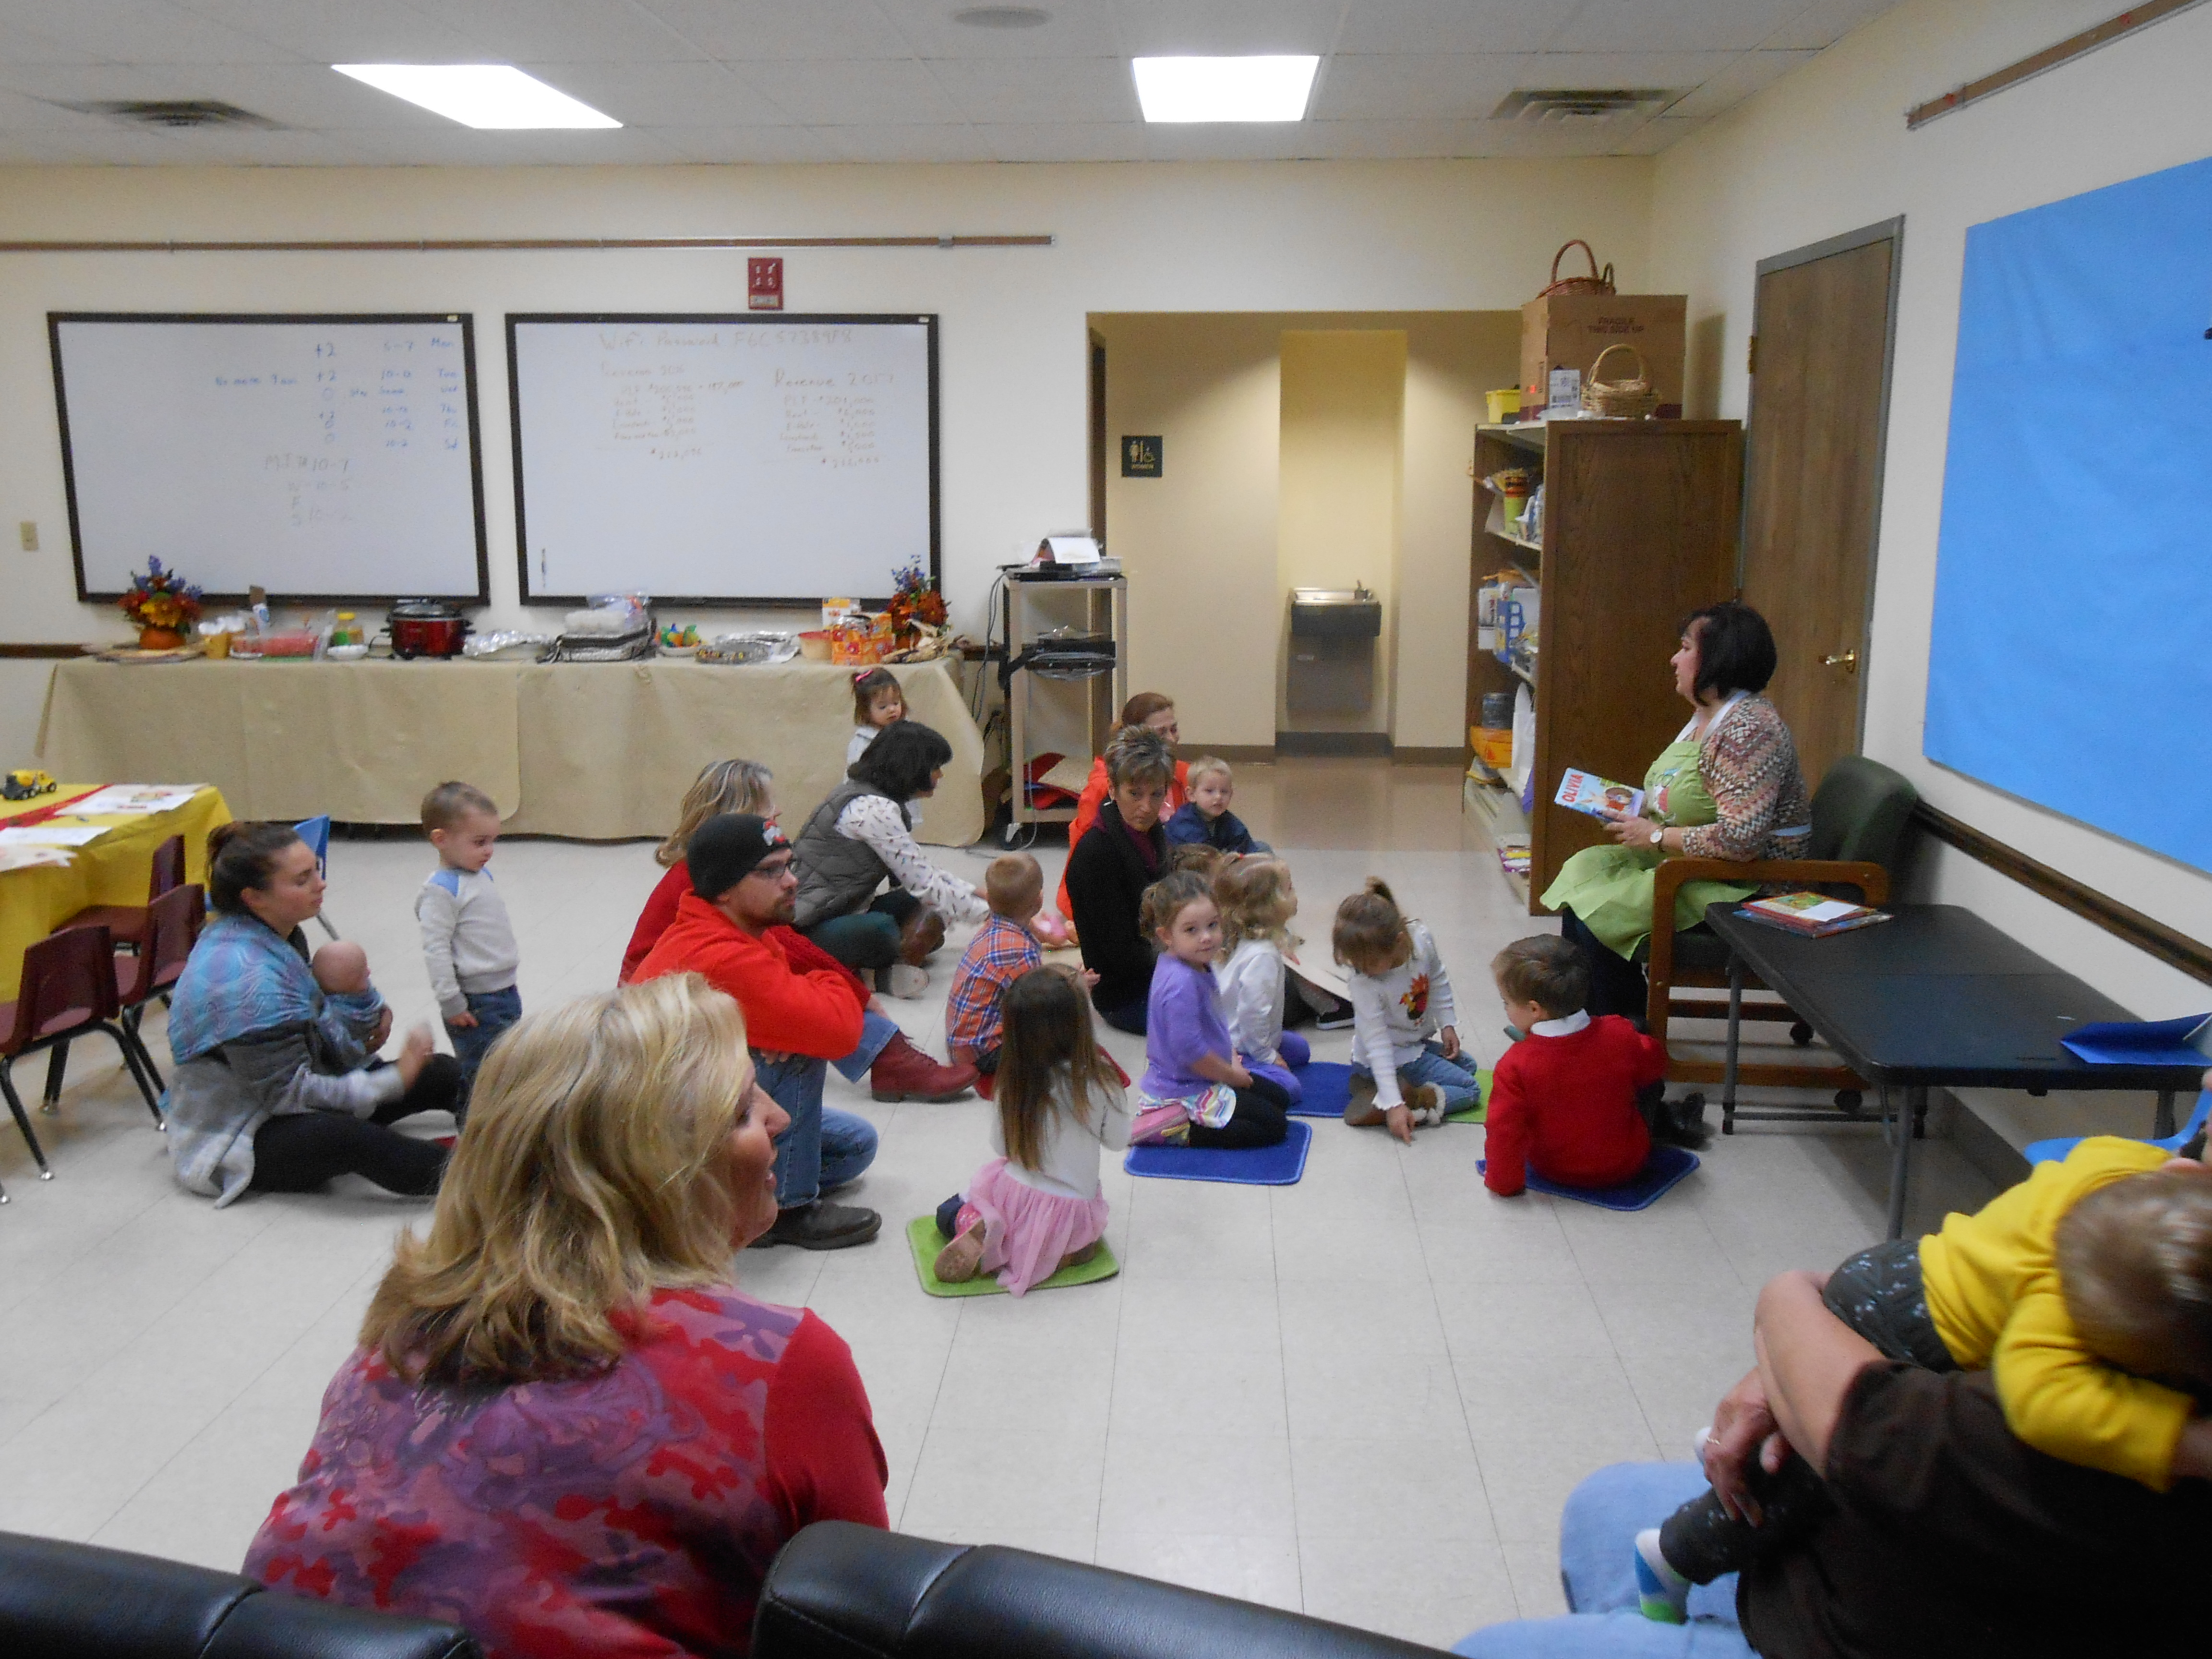 Preschool Story Time continues to be a very popular and fun event for our community